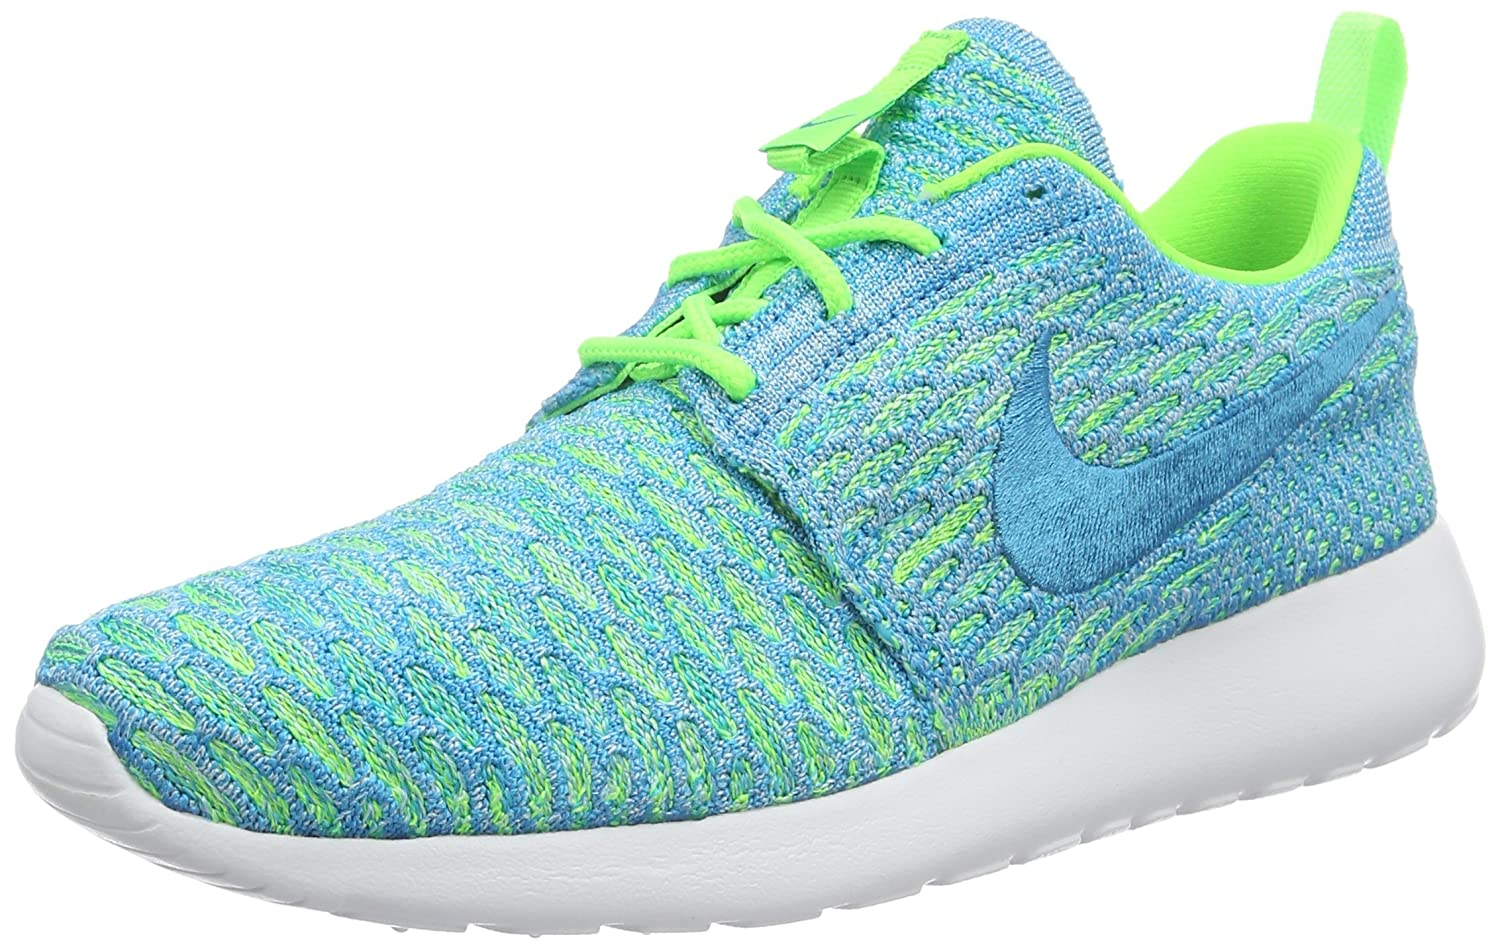 NIKE Womens Roshe One Flyknit Flyknit Colorblock Running Shoes B008J19K8K 6.5 B(M) US|Green